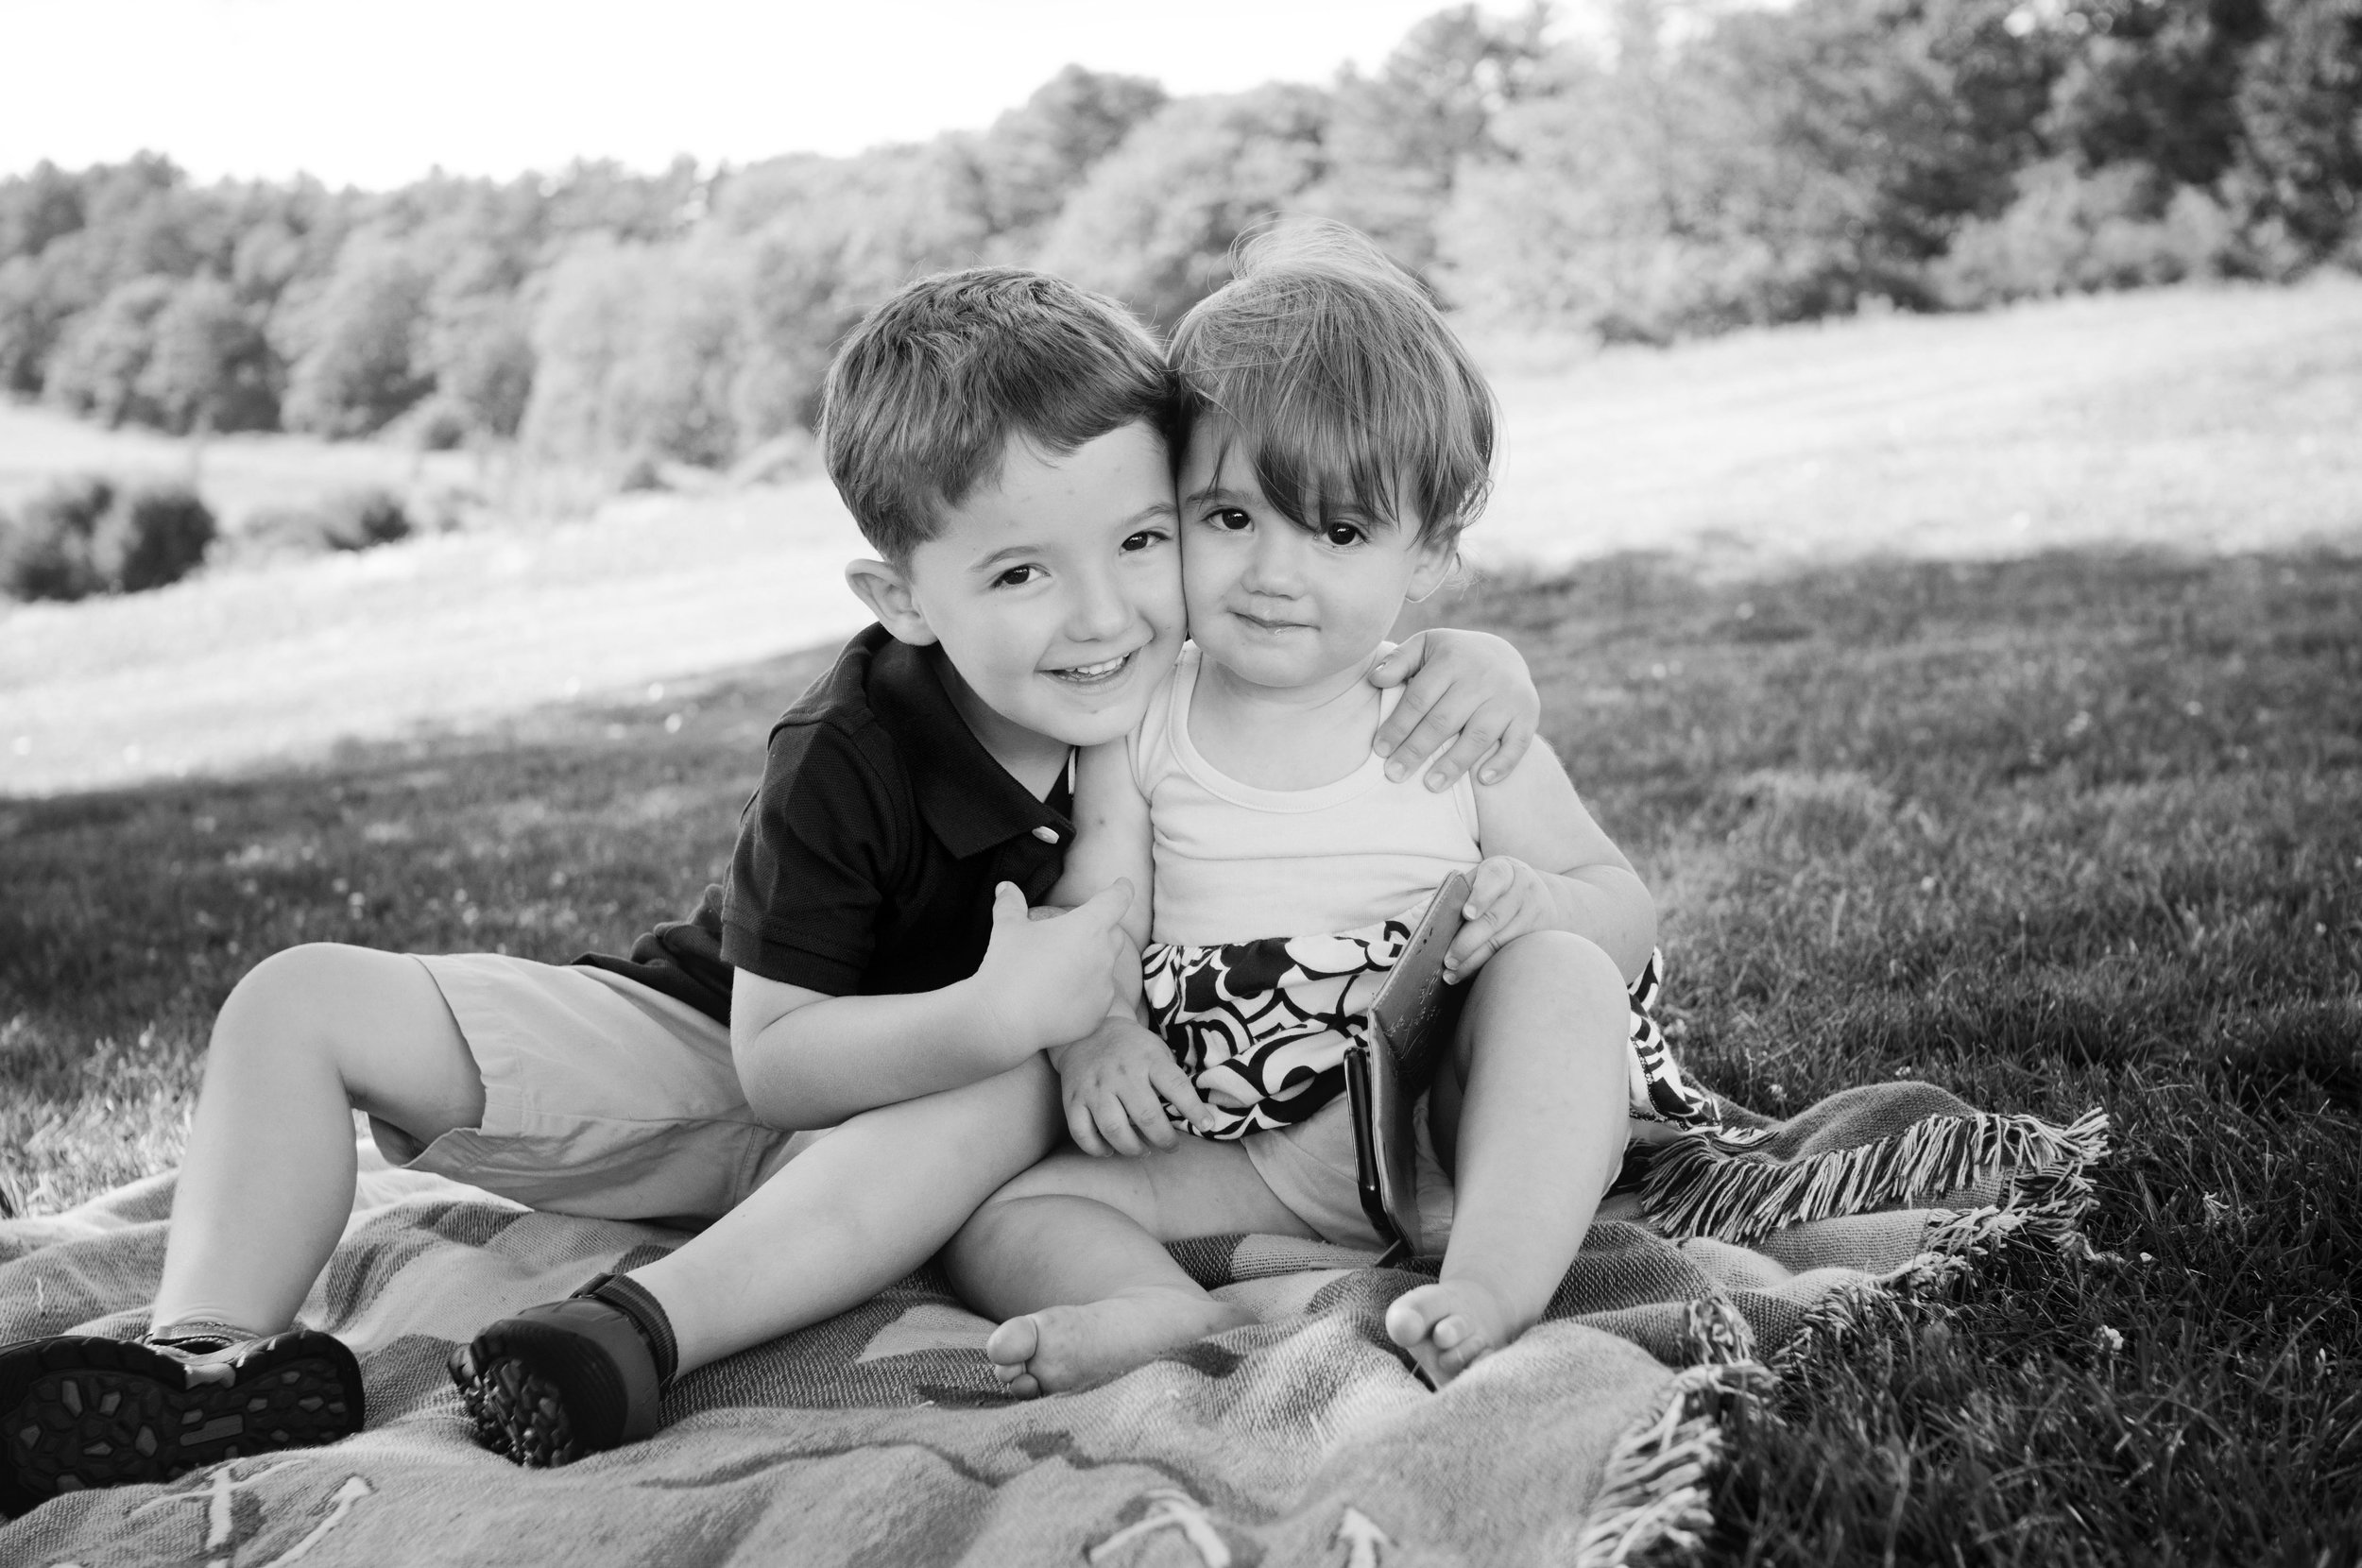 brother and sister portrait